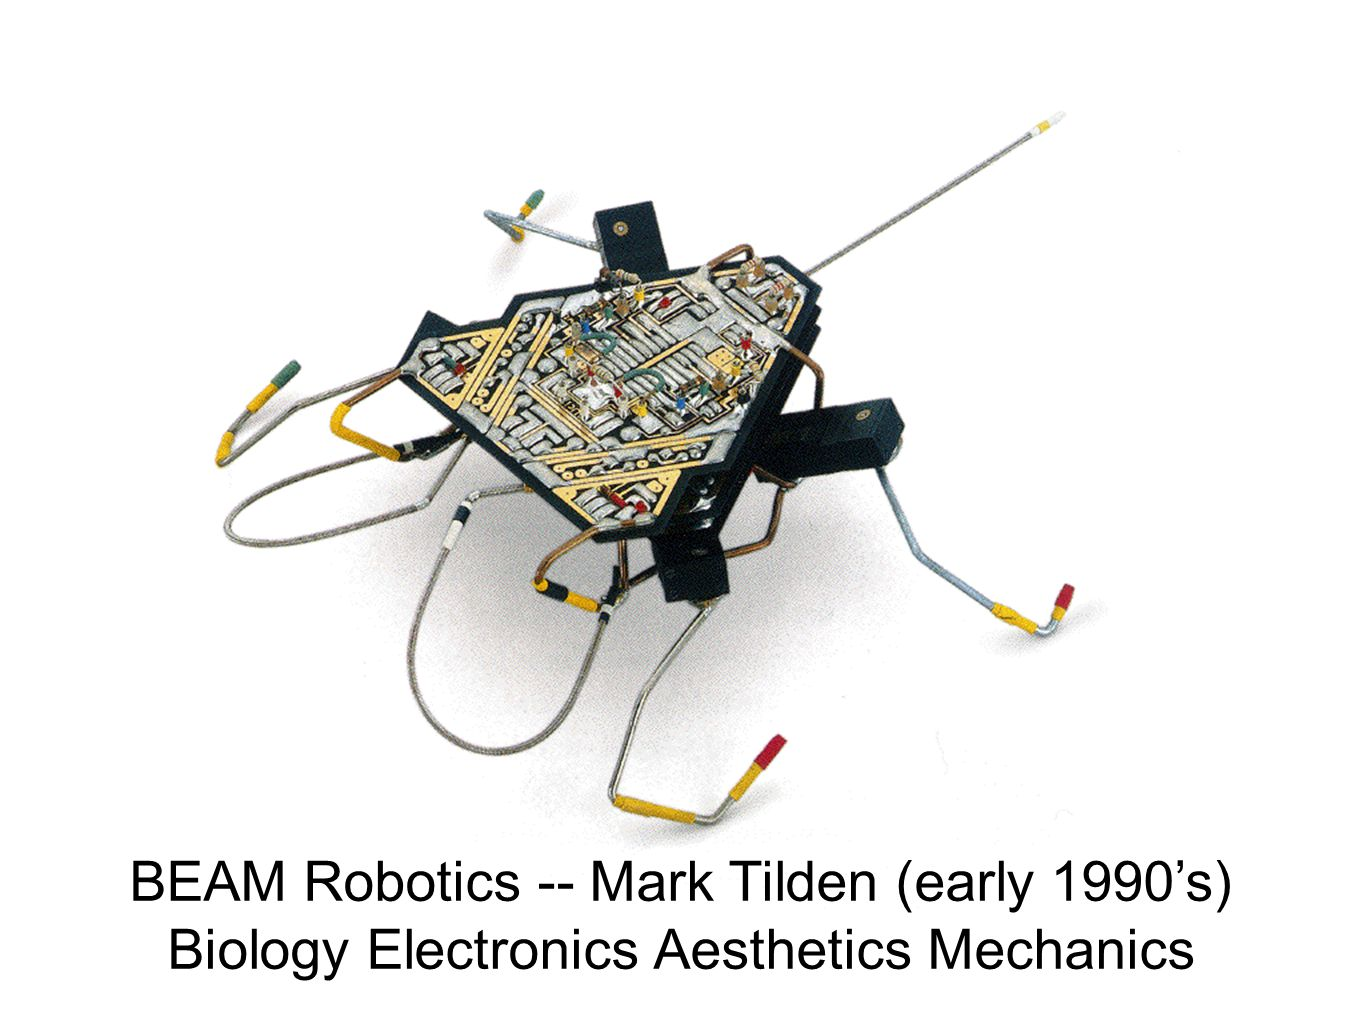 BEAM Robotics -- Mark Tilden (early 1990s) Biology Electronics Aesthetics Mechanics